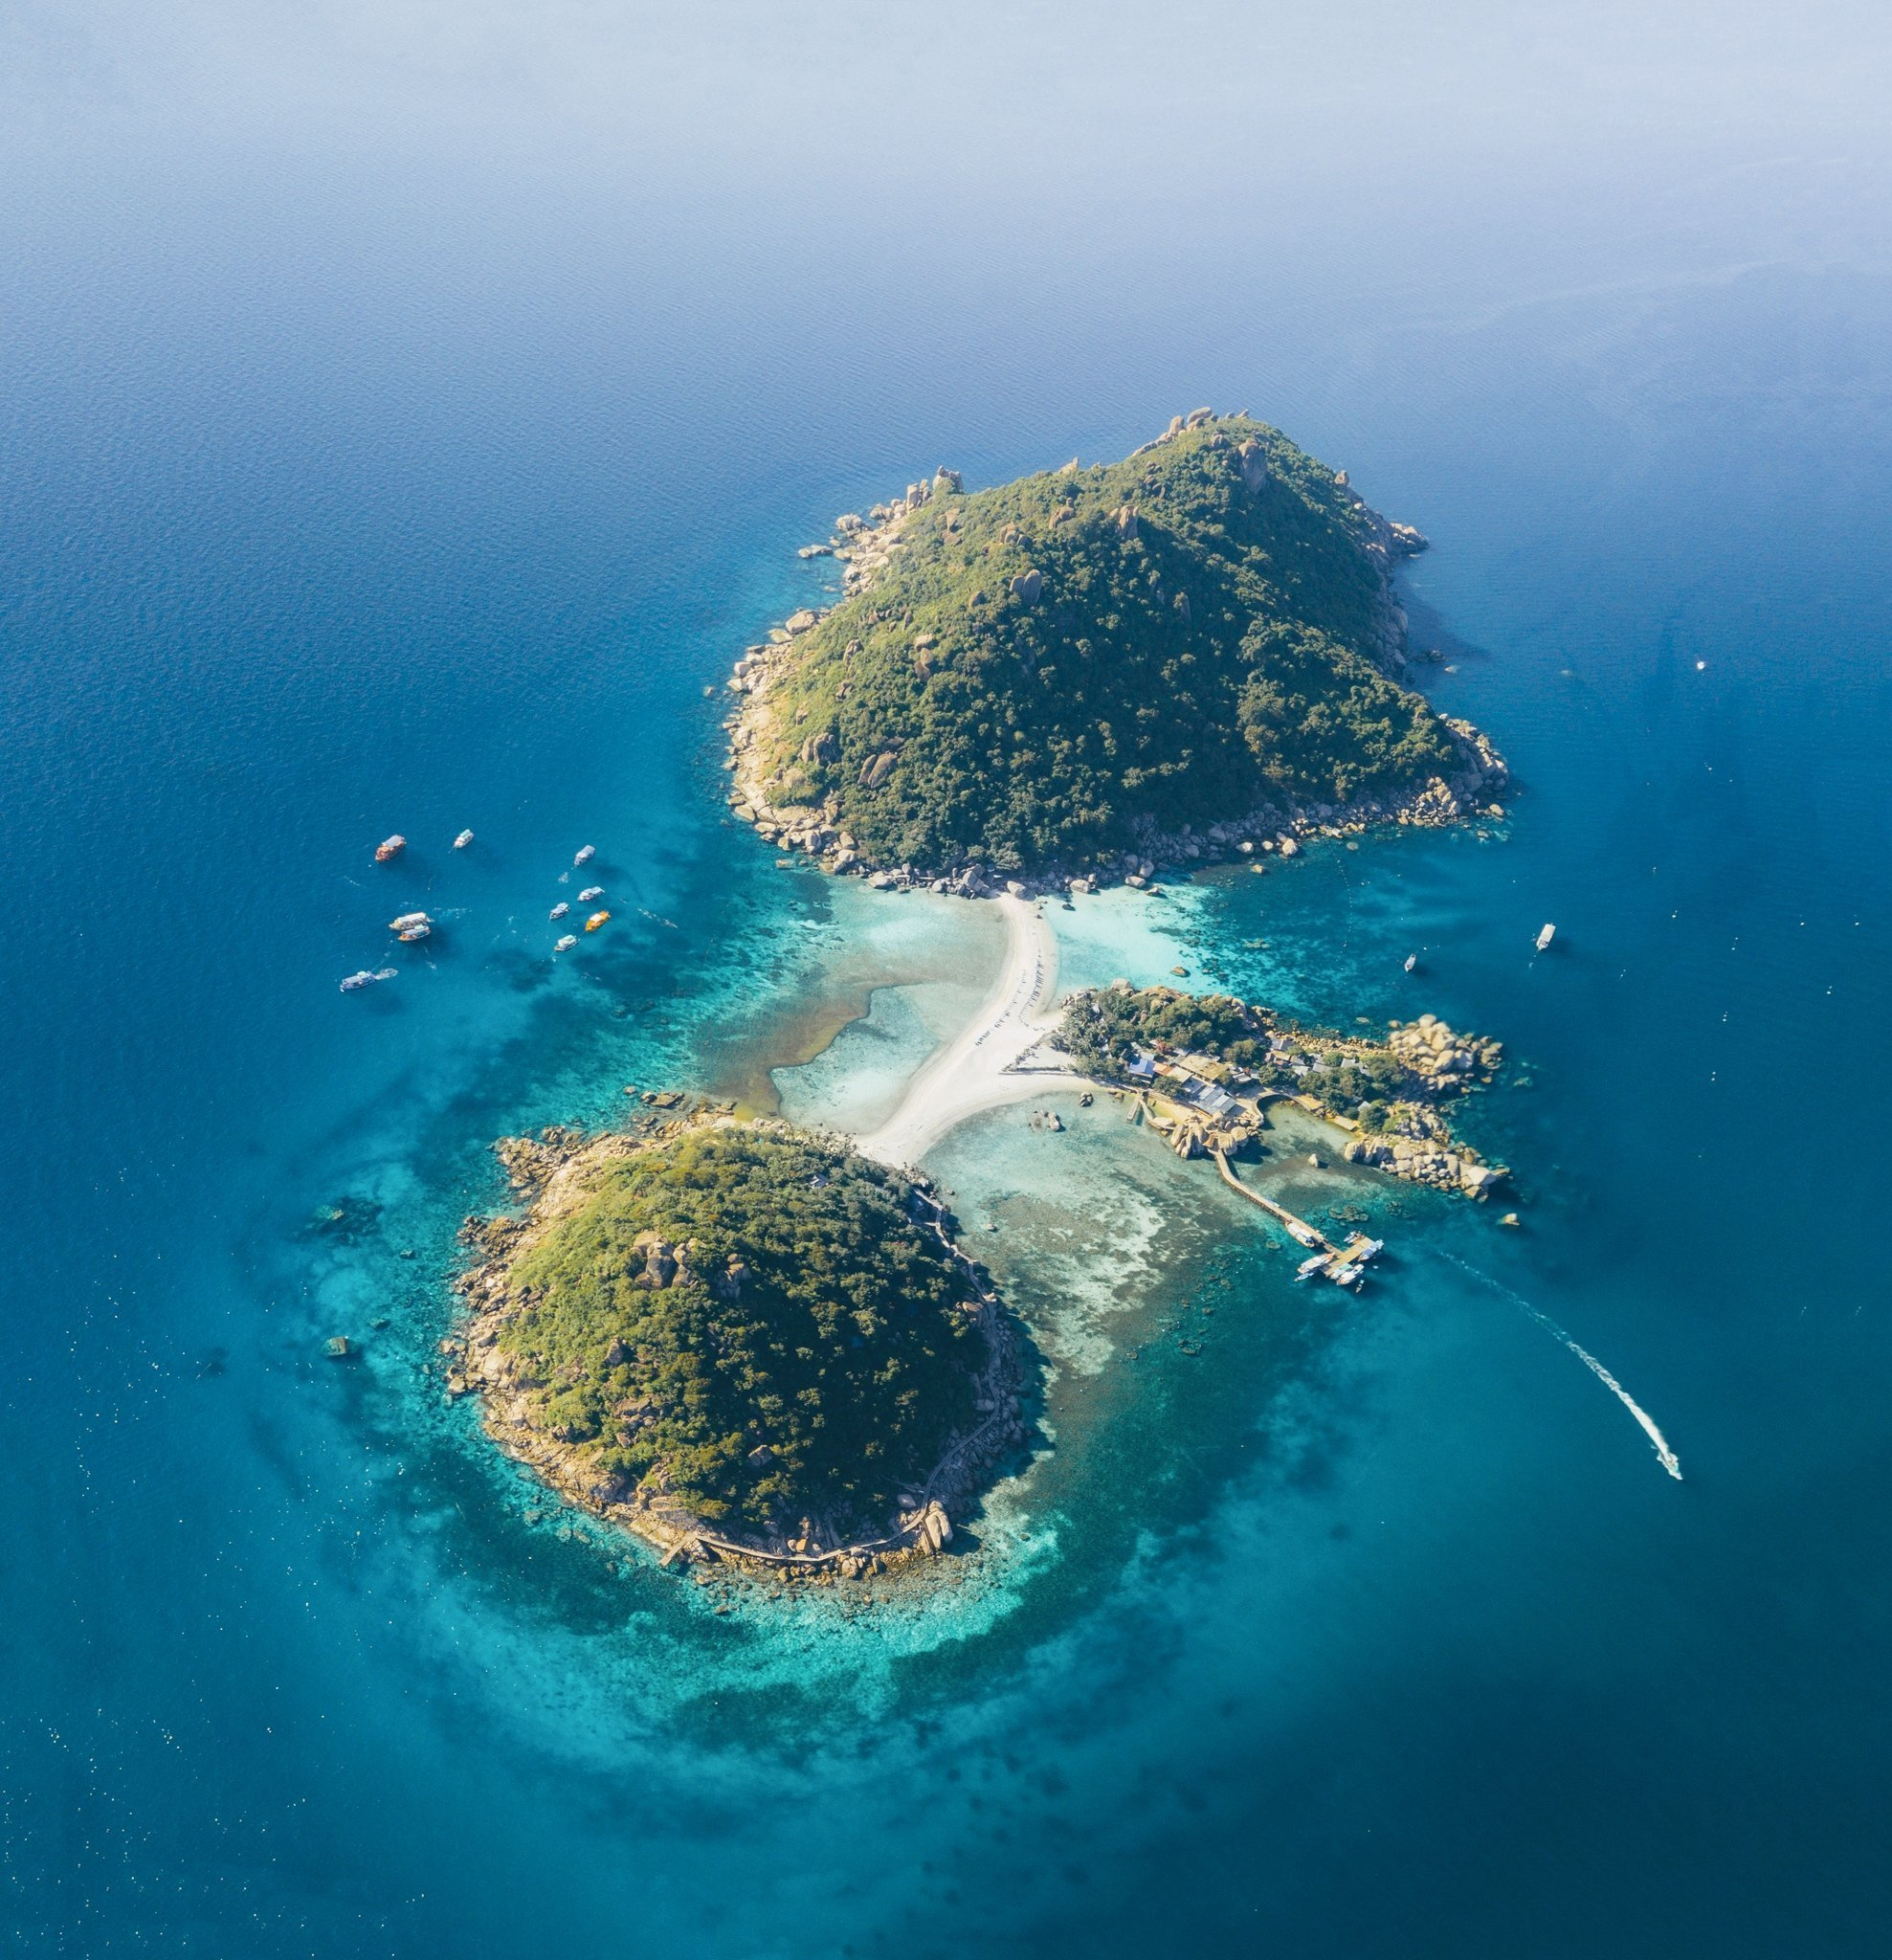 One of the best things to do on Koh Tao is to see Koh Nang Yuan from a drone